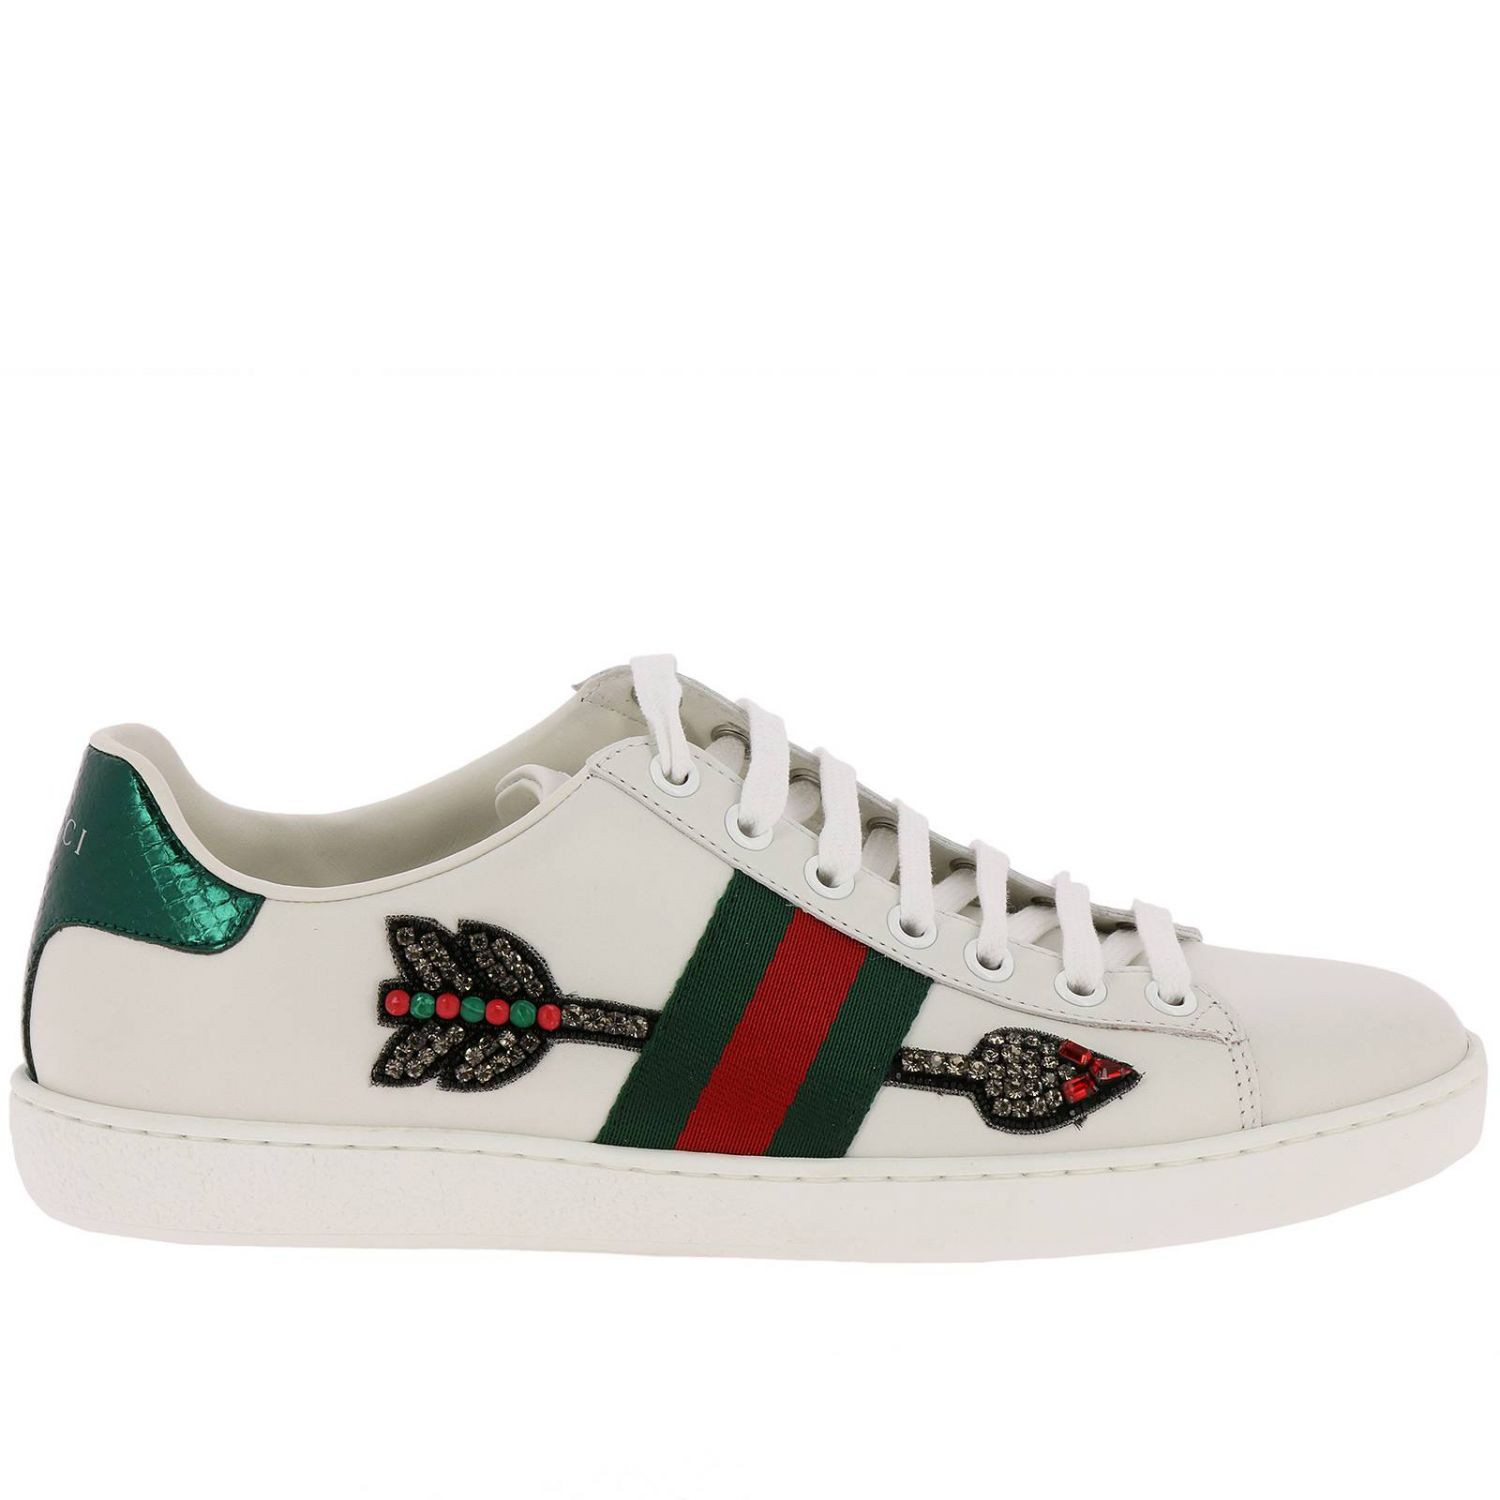 Sneakers New Ace Sneakers In Genuine Soft Leather With Web Bands And Arrow Patch 8400631